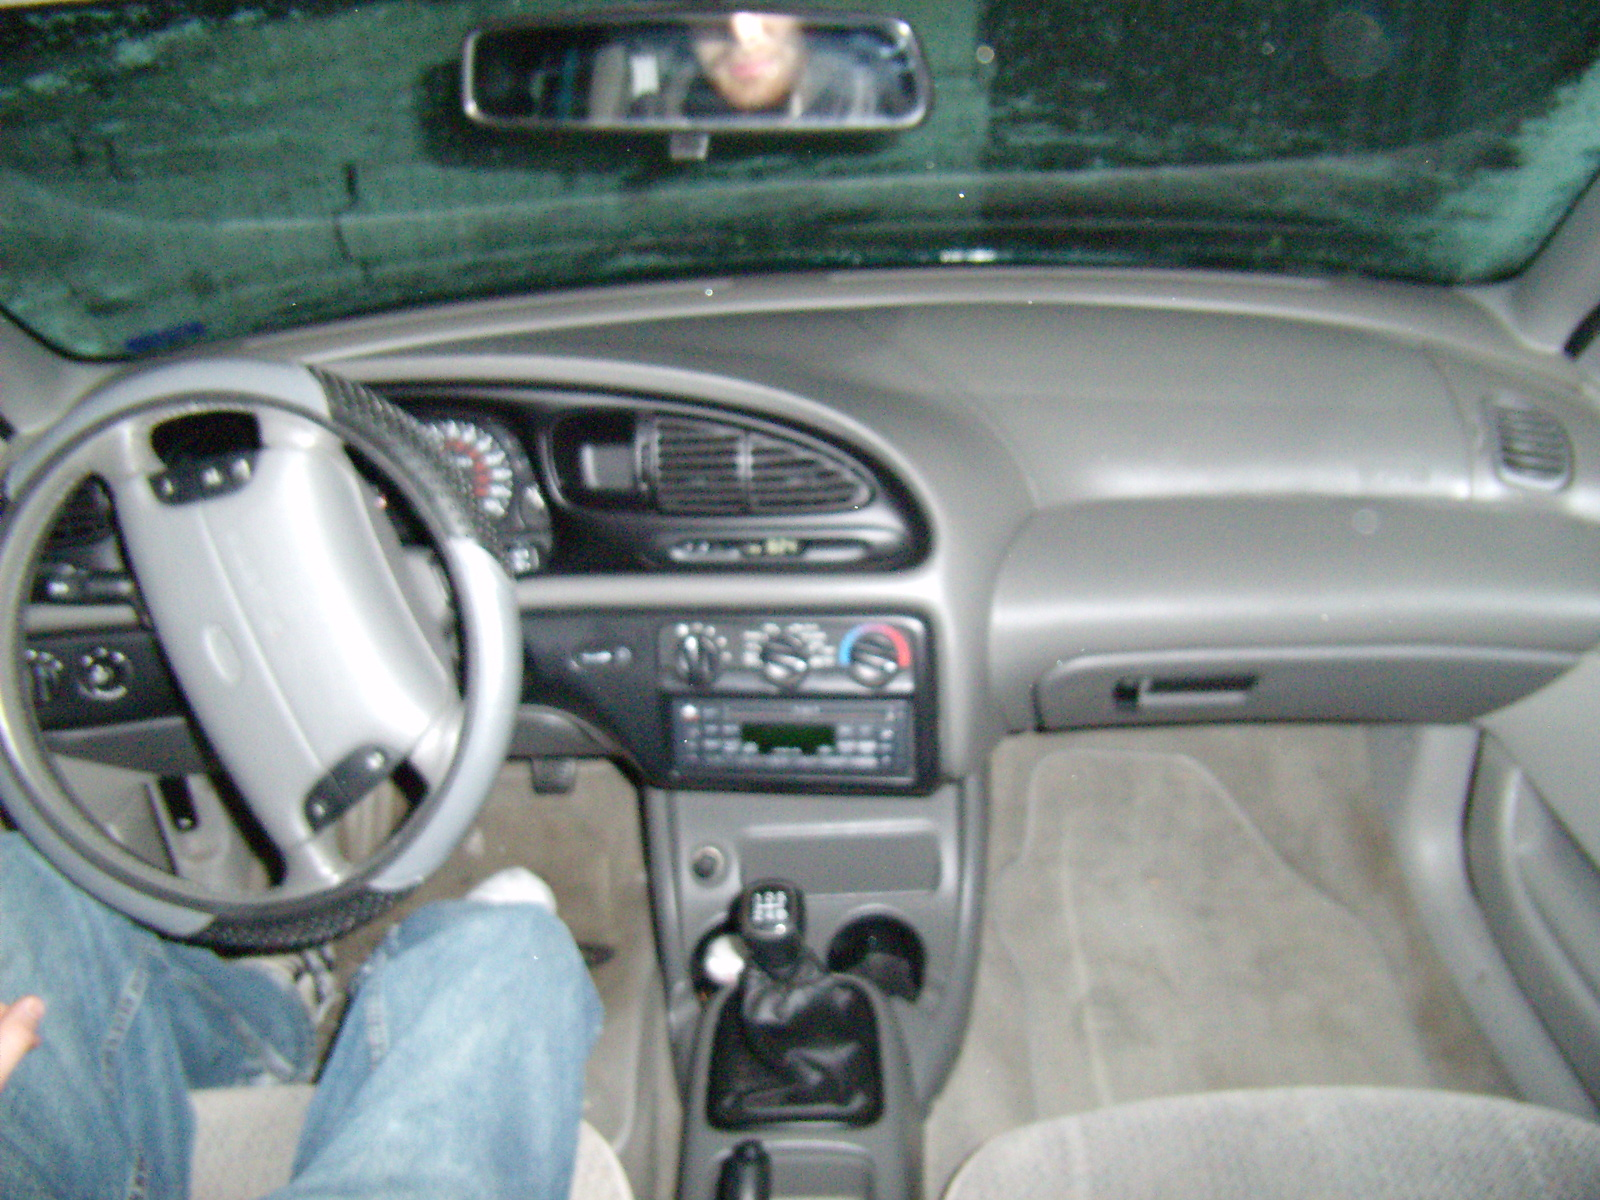 1998 ford contour image 11